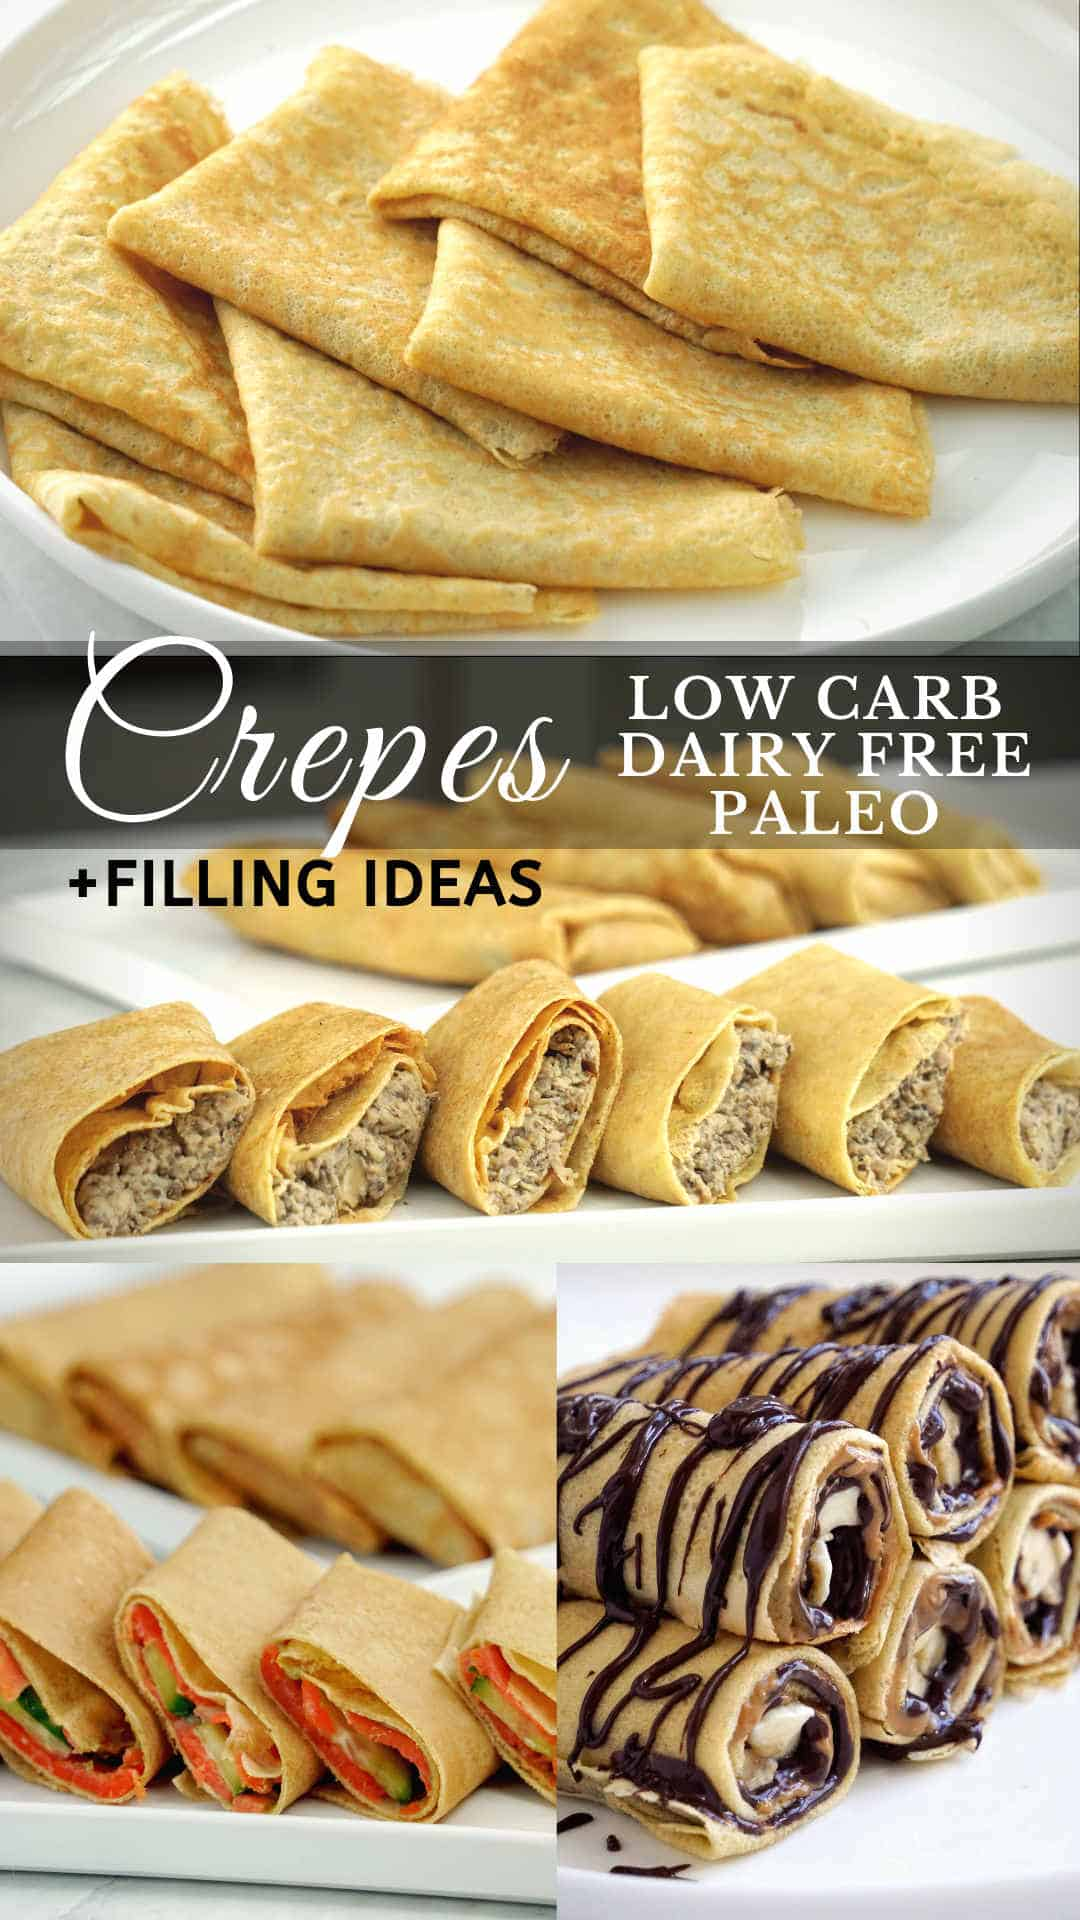 Grain free low carb crepes made with almond flour (almond meal) and banana flour. These low carb crepes are also dairy free, gluten free and paleo compliant, perfect for you clean eating diet too. Thin and flexible low carb crepes with 3 different sweet and savory filling ideas to try.